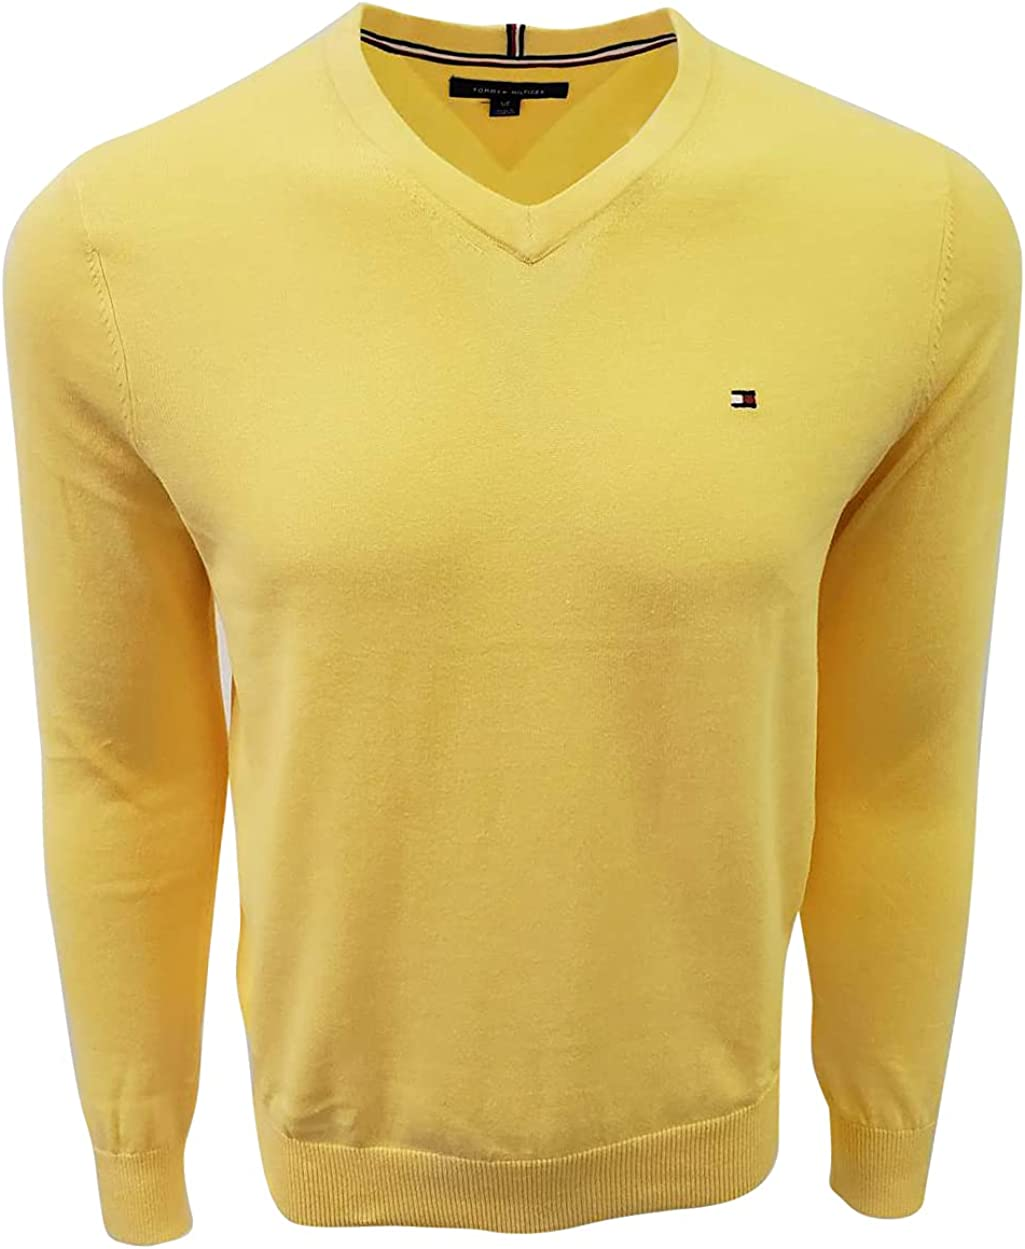 Tommy Hilfiger wholesale Mens At the price of surprise Neck V Sweater